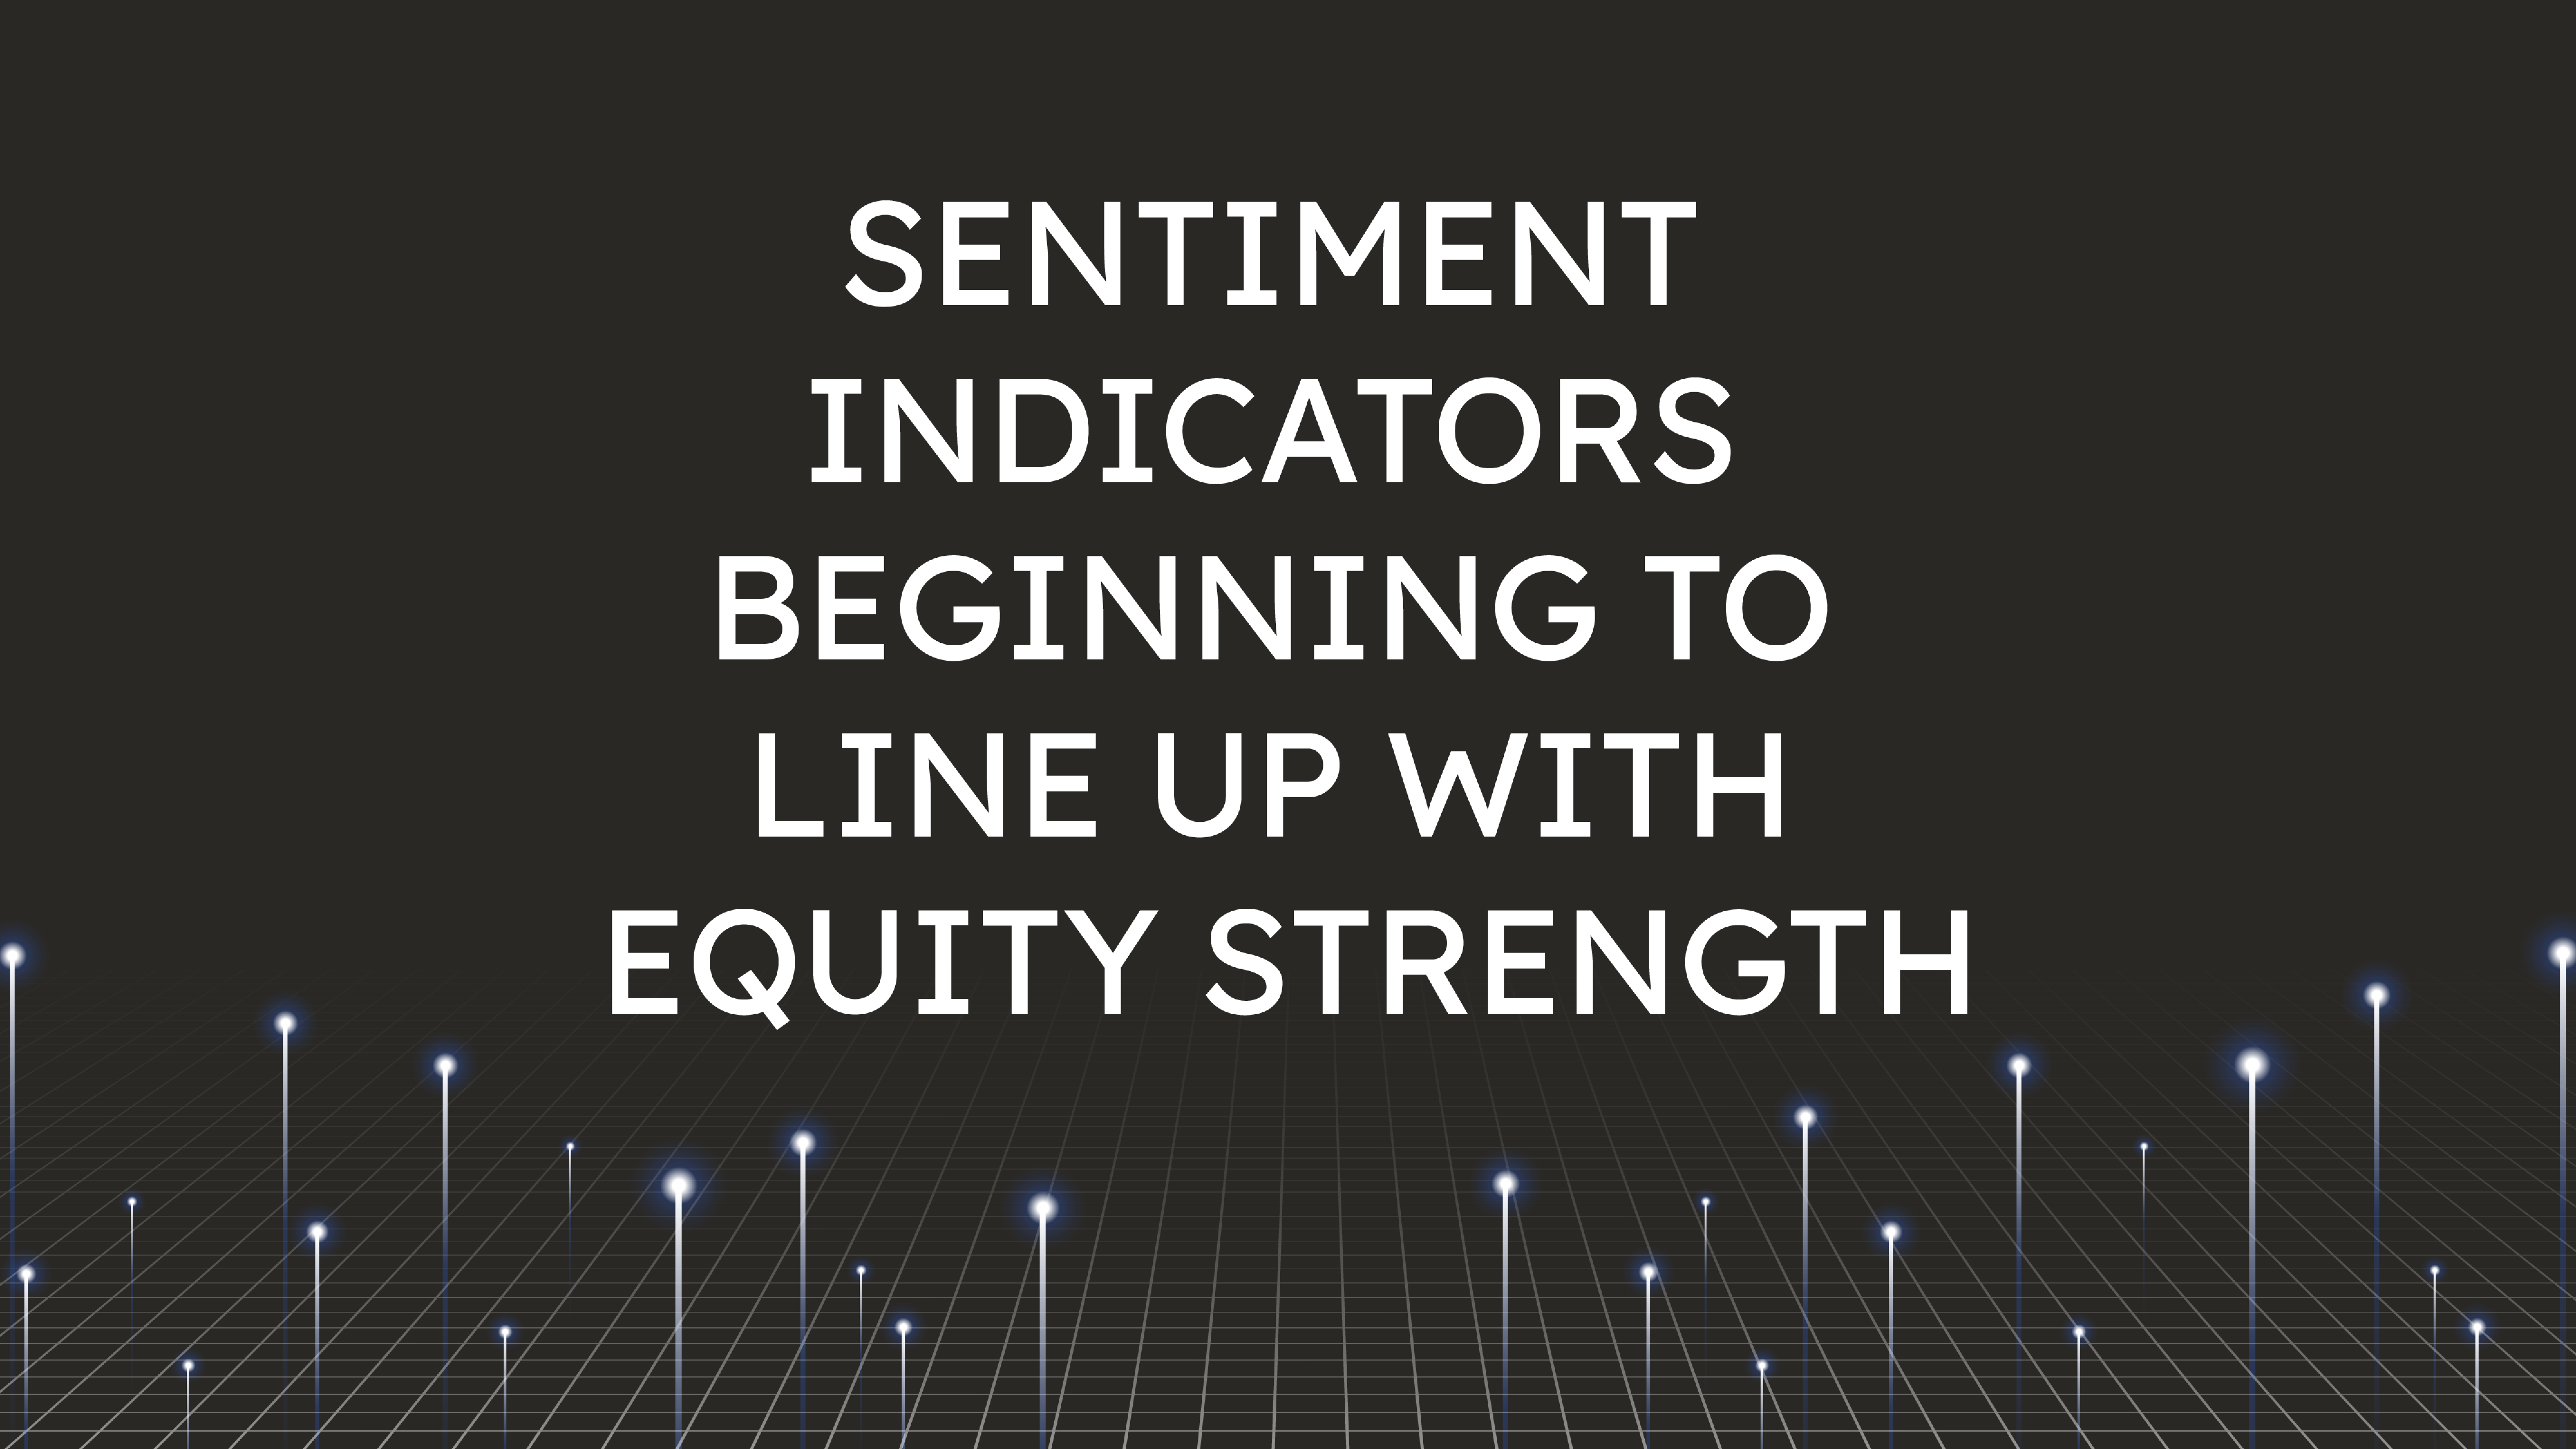 Sentiment Indicators Beginning  to Line Up with Equity Strength